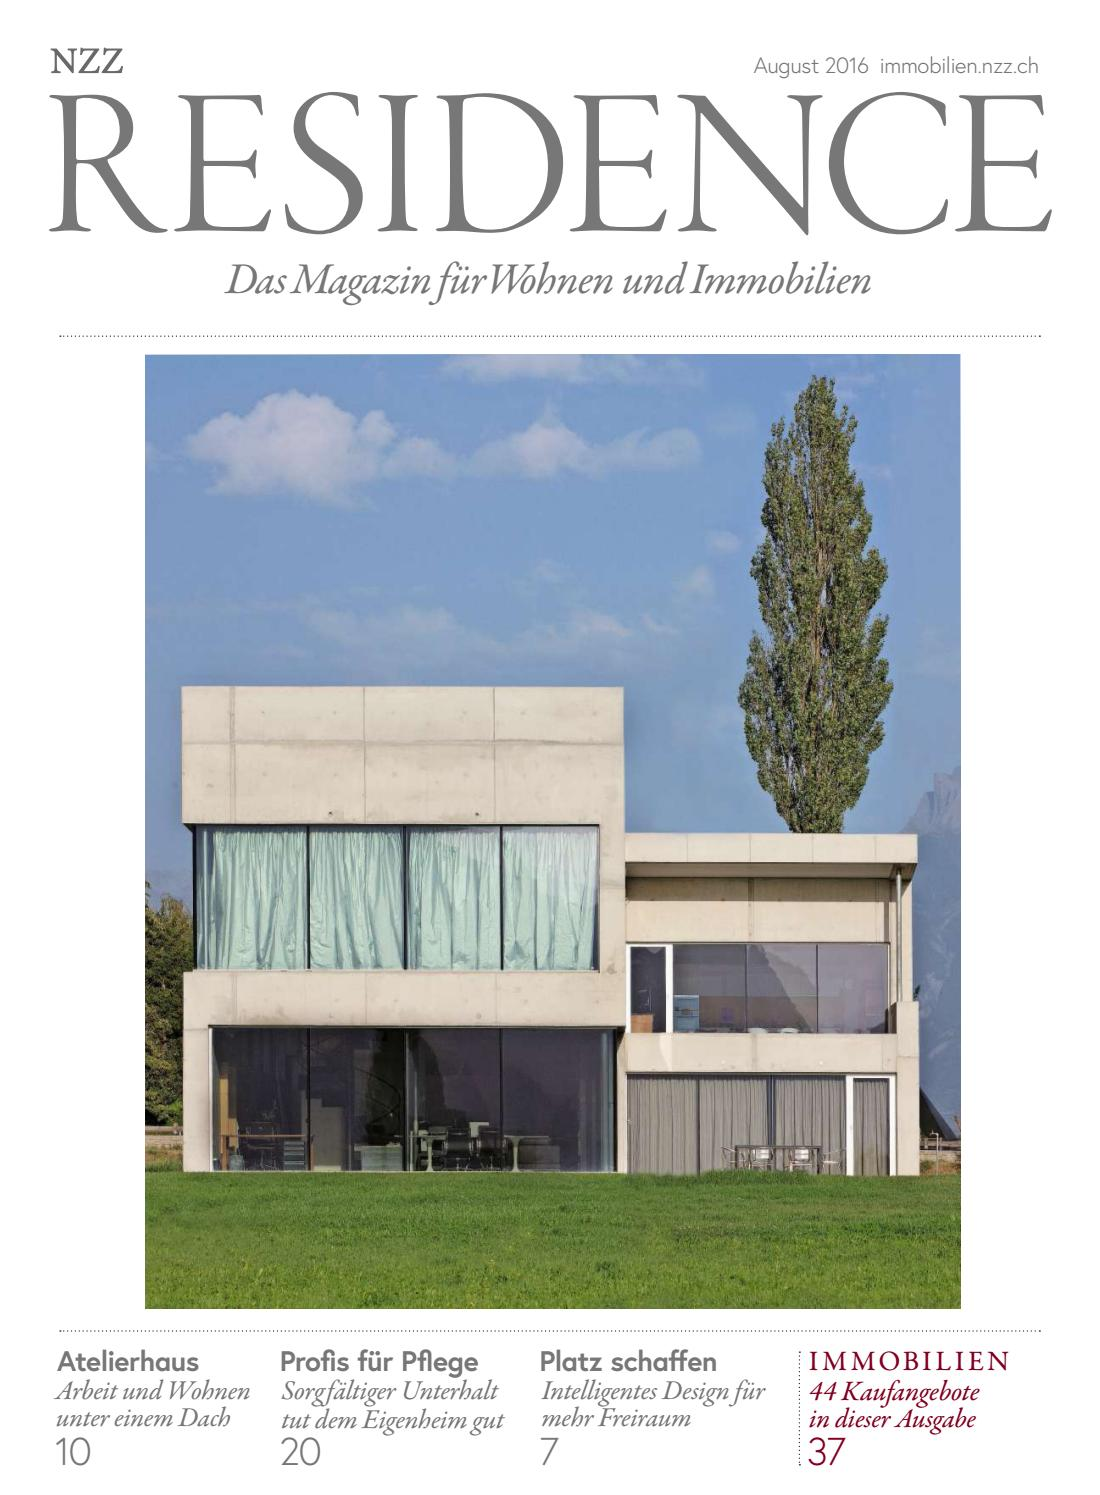 Residence August 2016 by NZZ Residence - issuu